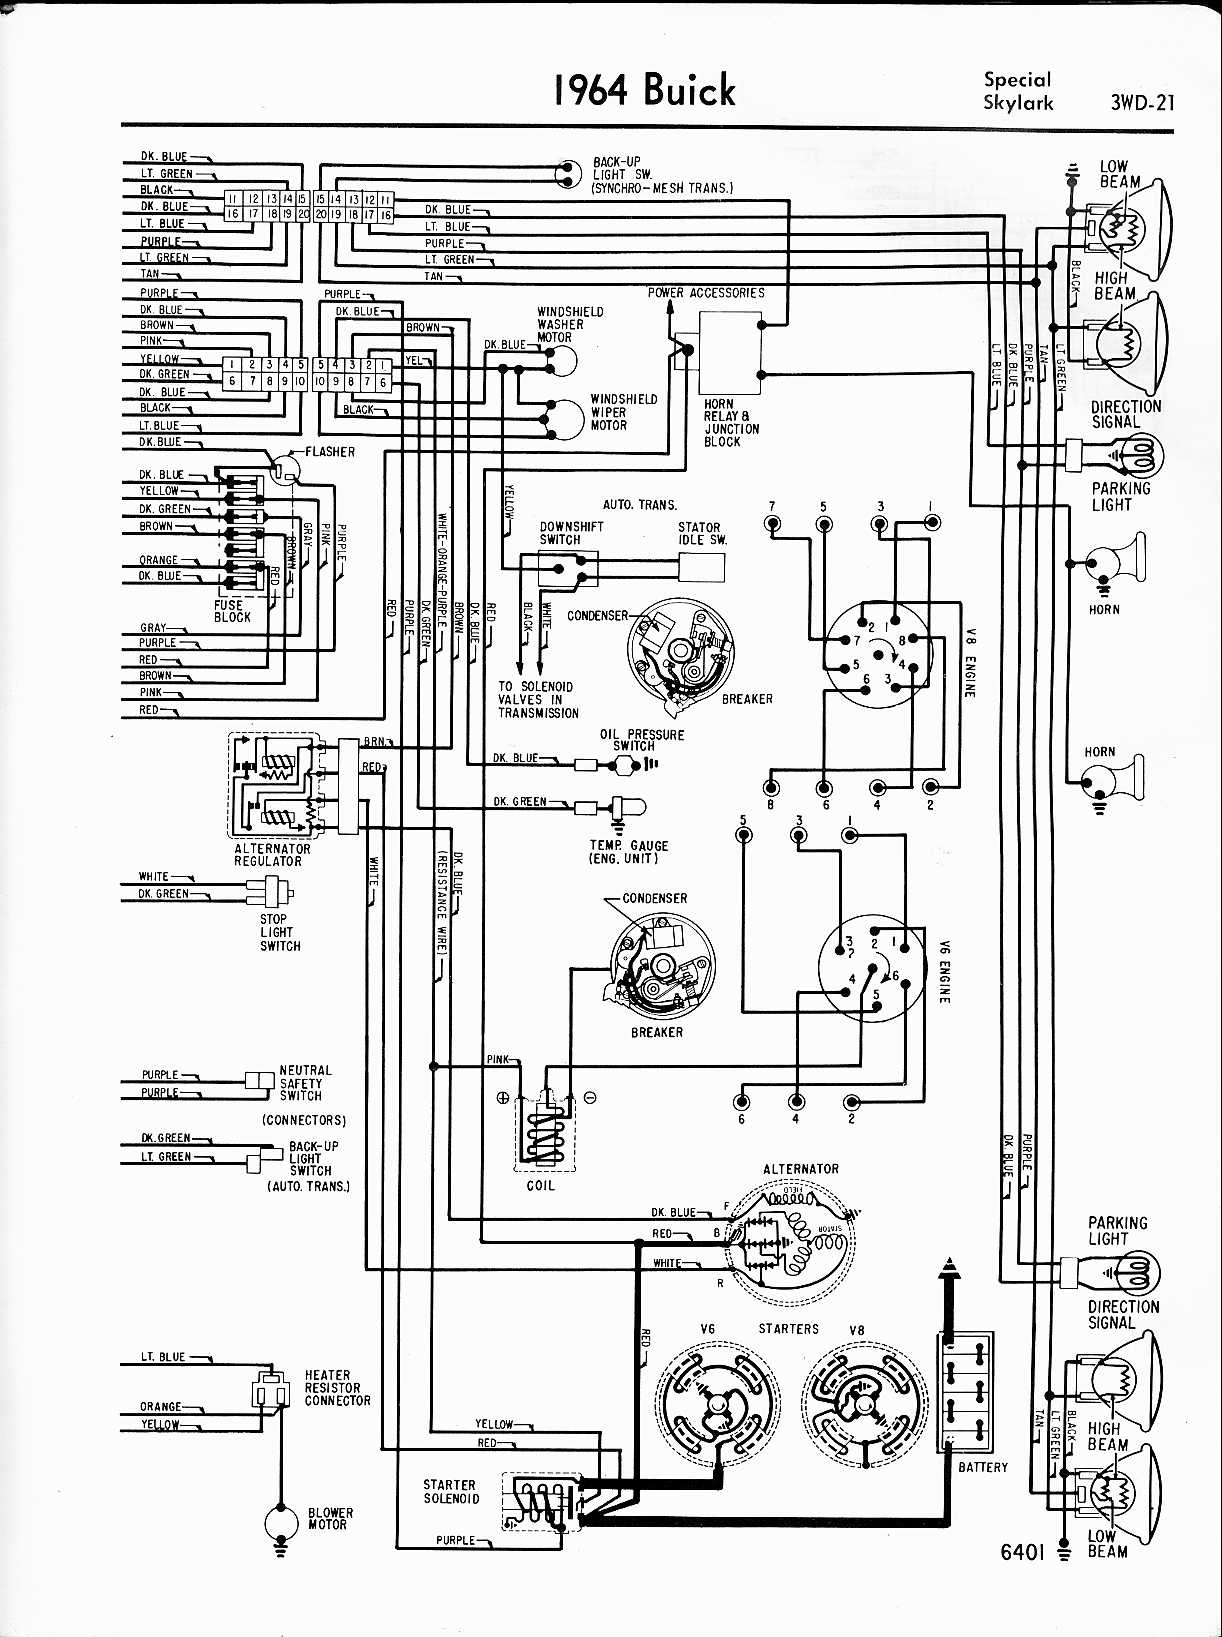 1972 buick gs wiring diagram 1972 wiring diagrams online 1970 nova wiring diagram 1970 wiring diagrams